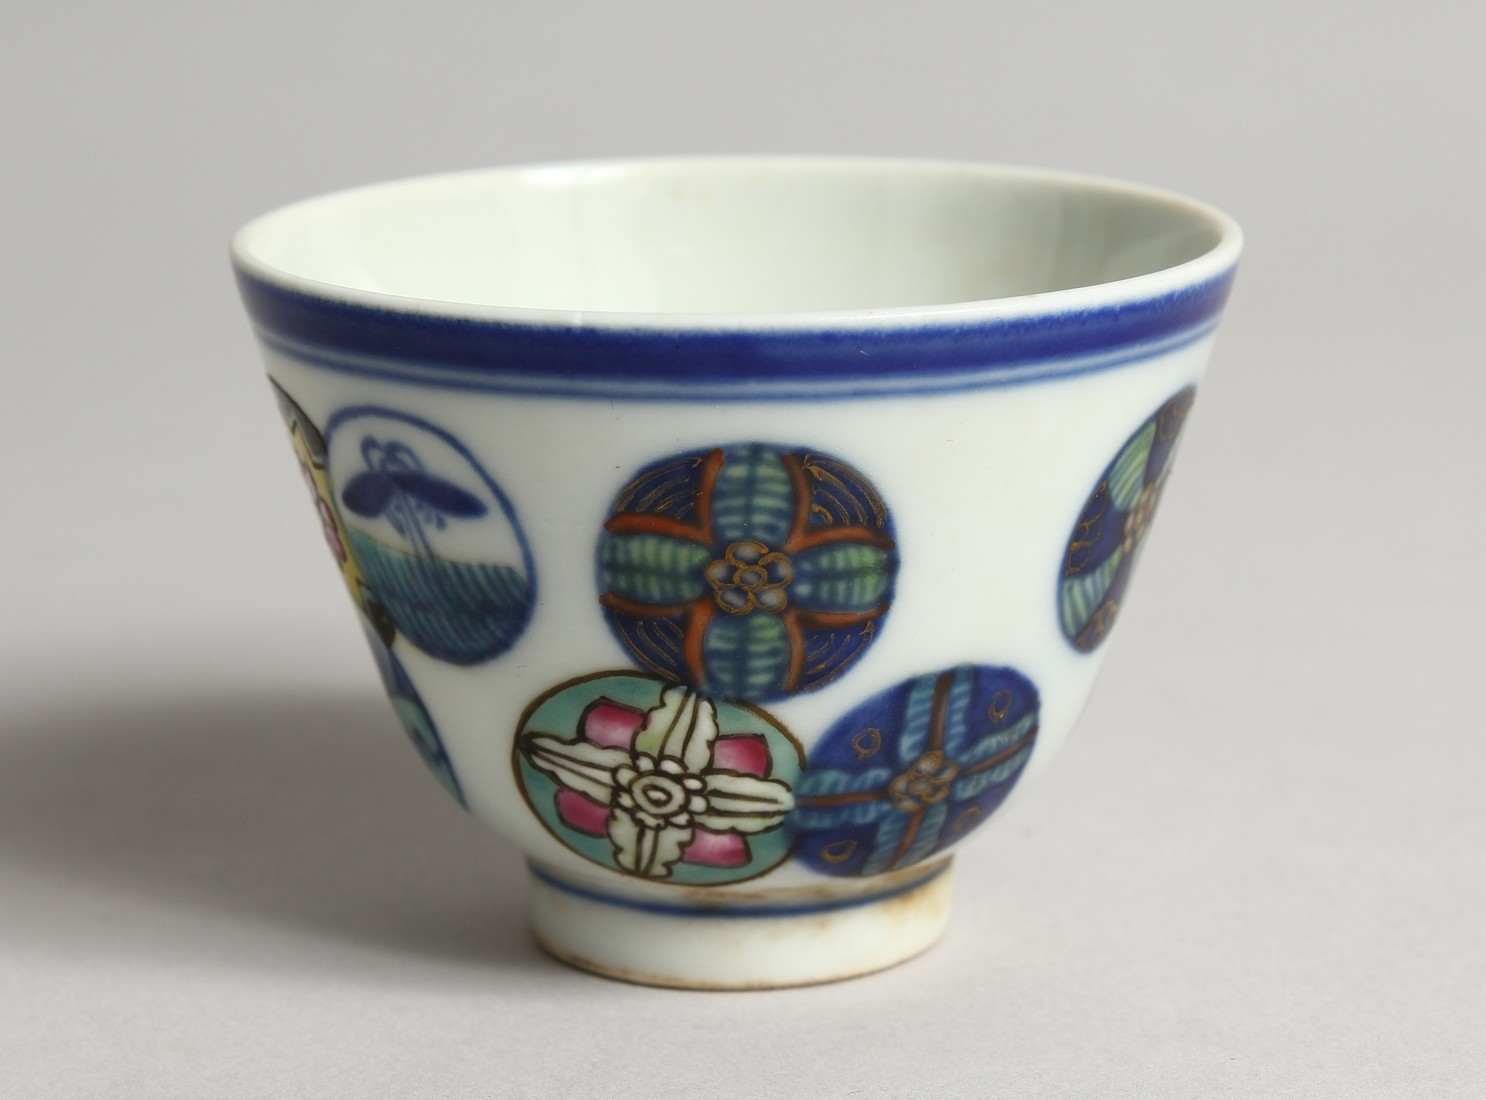 A SMALL CHINESE PORCELAIN RICE BOWL 2.75ins diameter.